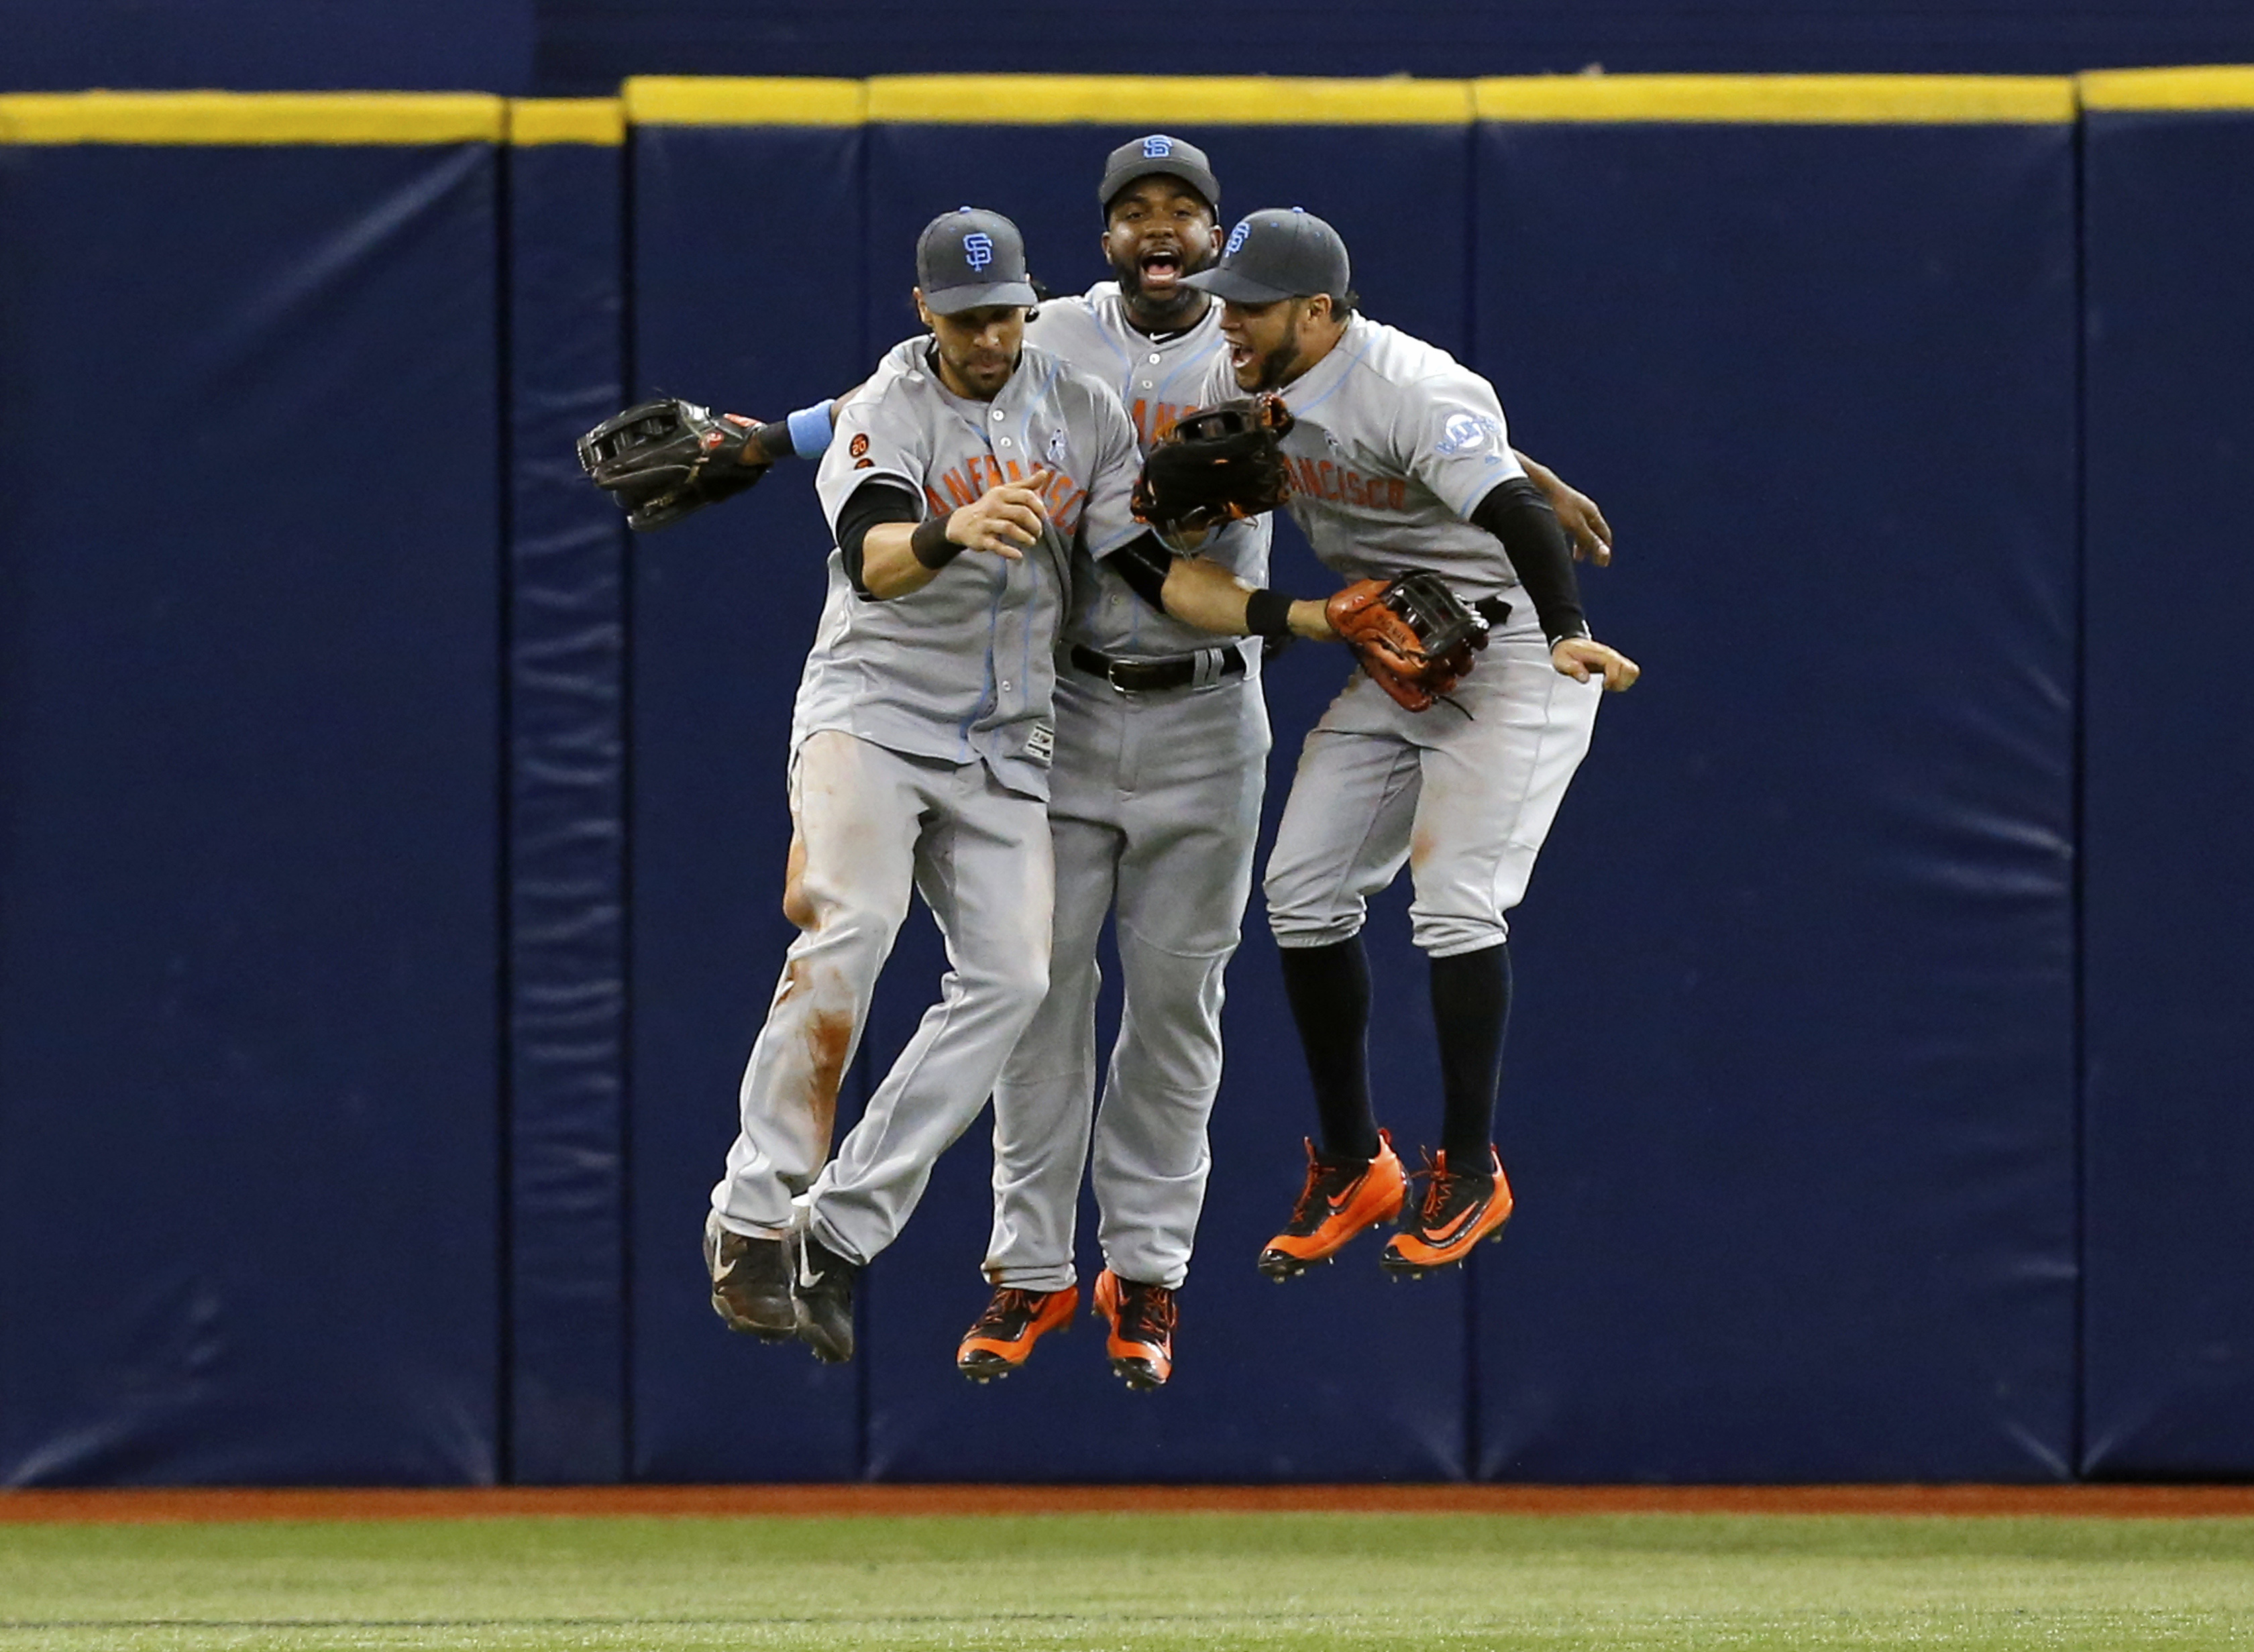 San Francisco Giants outfielders, from left, Angel Pagan, Denard Span, and Gregor Blanco celebrate at the end of a 5-1 win over the Tampa Bay Rays in a baseball game, Sunday, June 19, 2016, in St. Petersburg, Fla. (AP Photo/Mike Carlson)